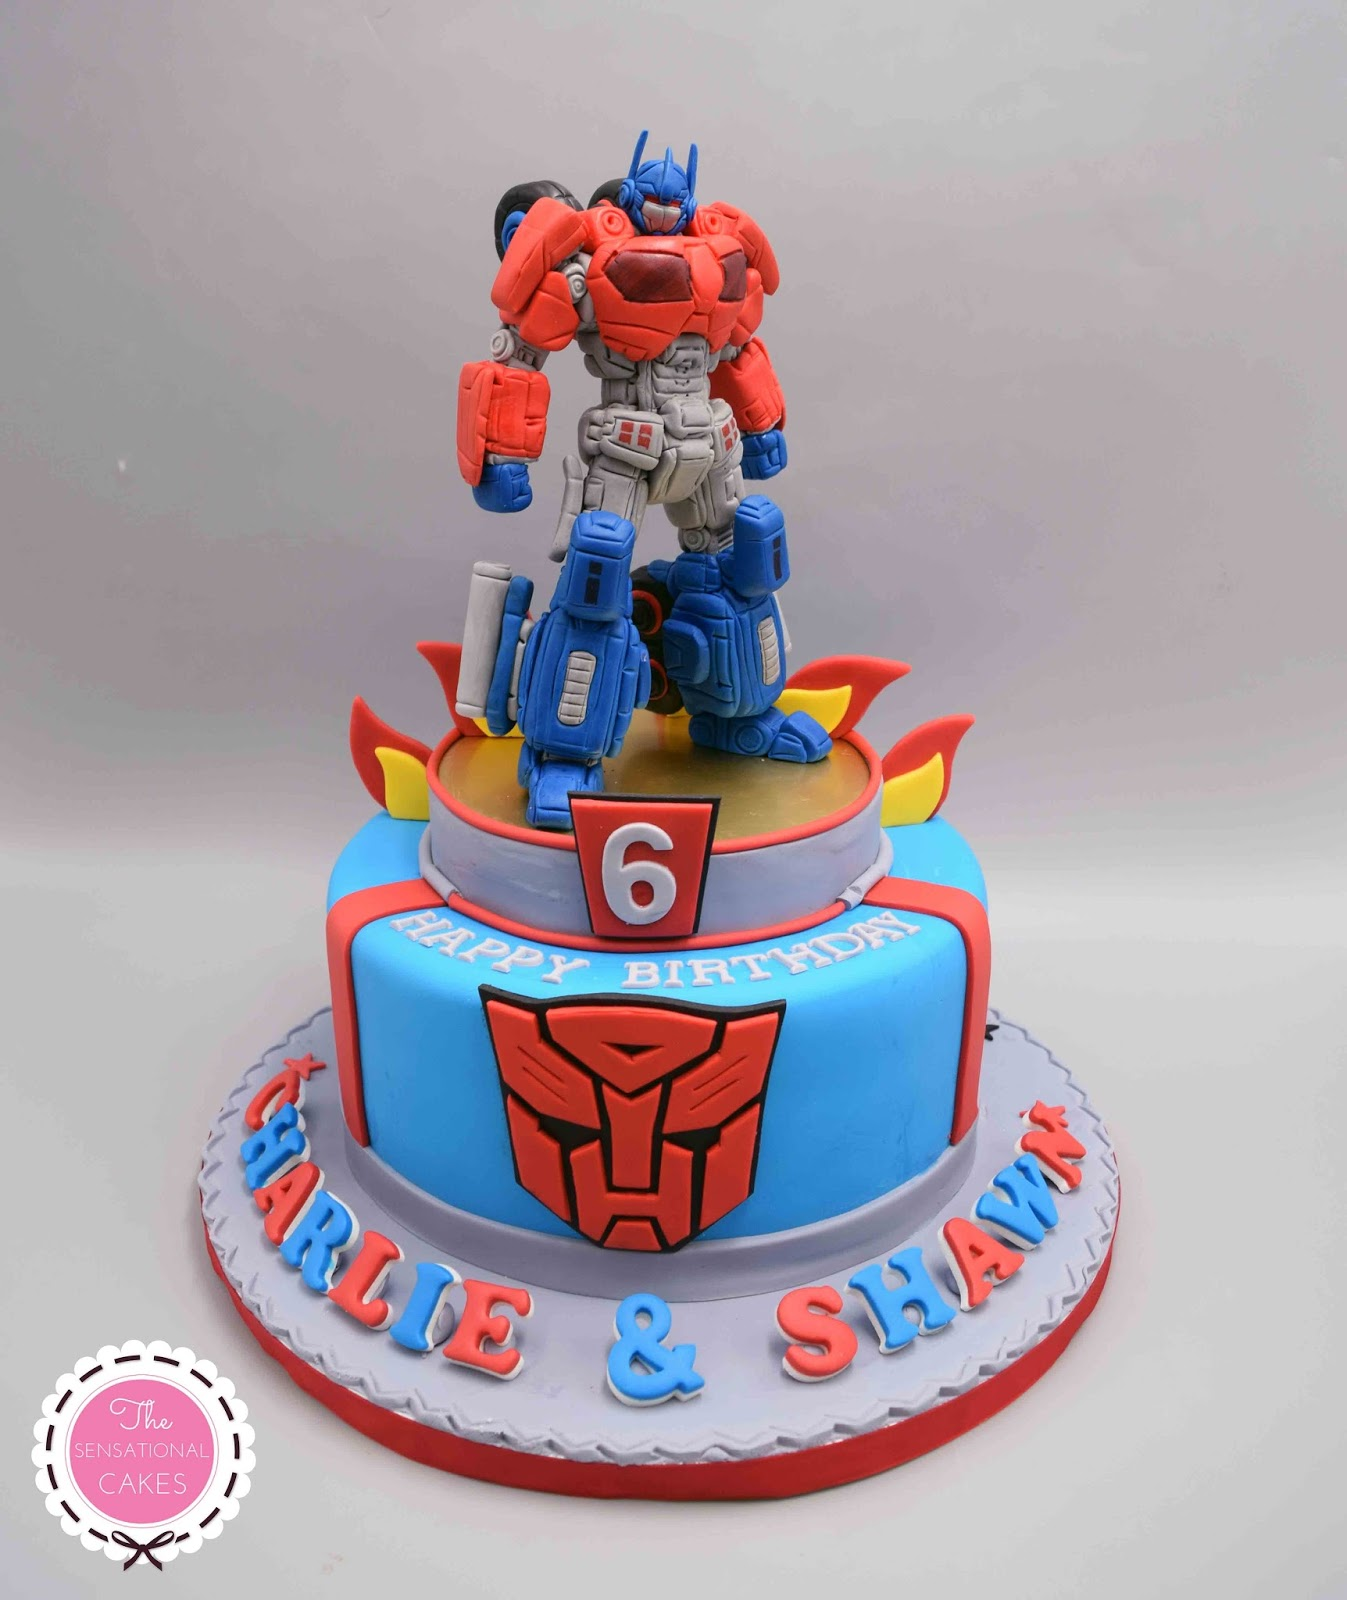 Cool The Sensational Cakes Transformers Theme 3D Birthday Cake Charlie Personalised Birthday Cards Paralily Jamesorg